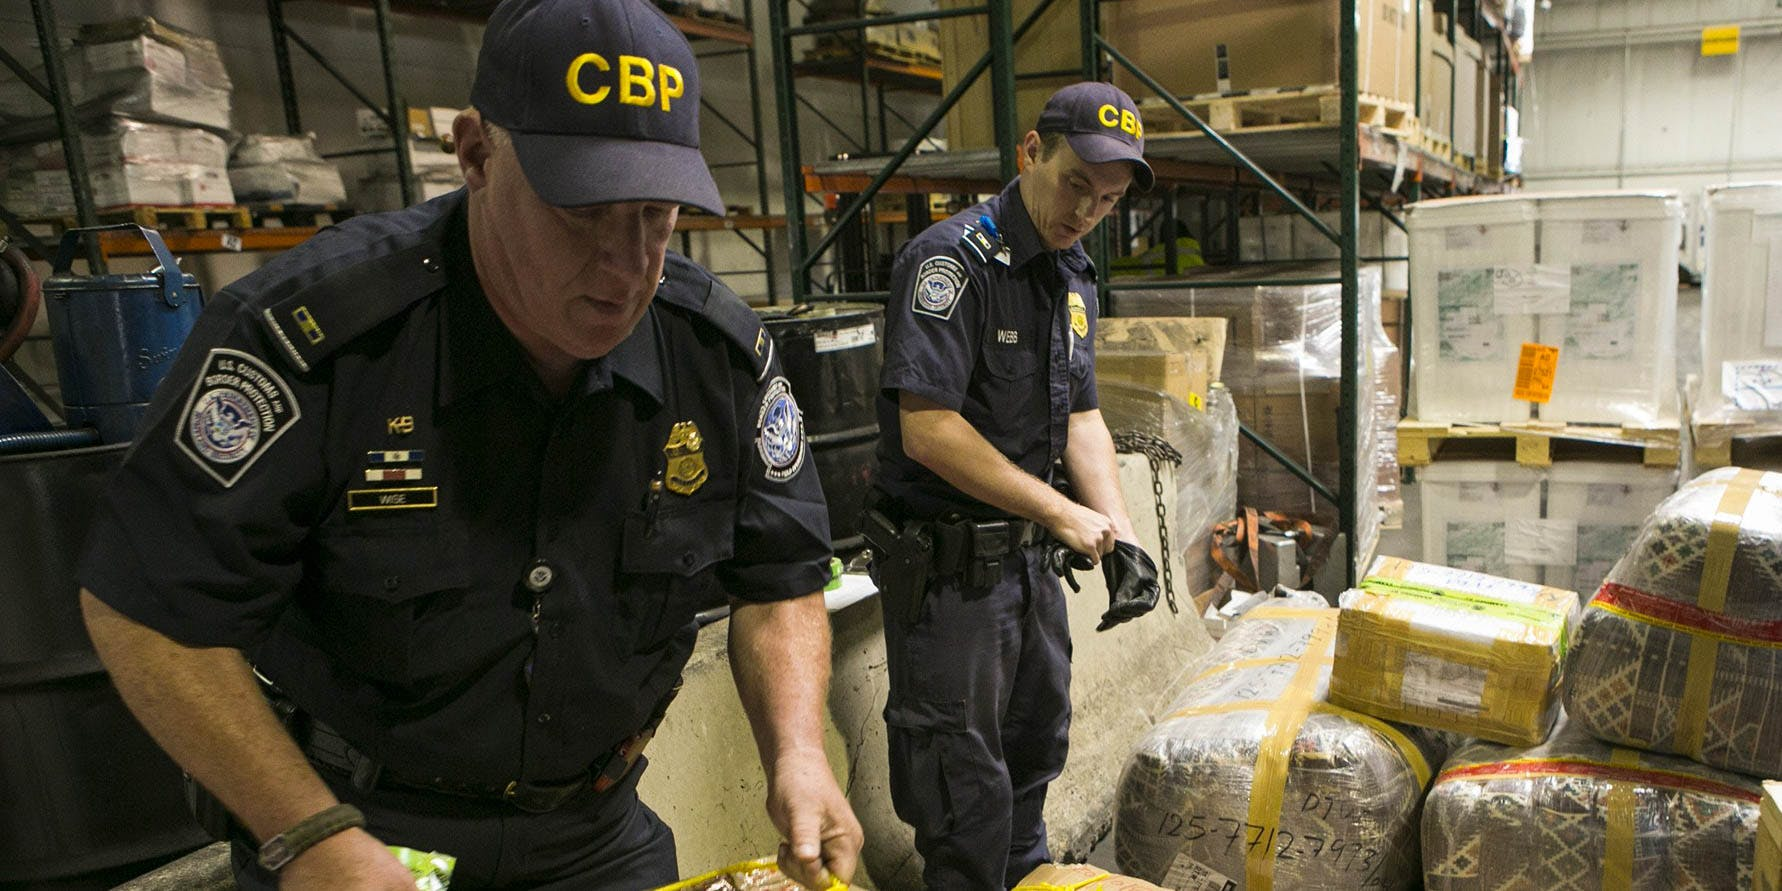 Drug trafficking at the borders of states with legalized cannabis is at a 10-year low